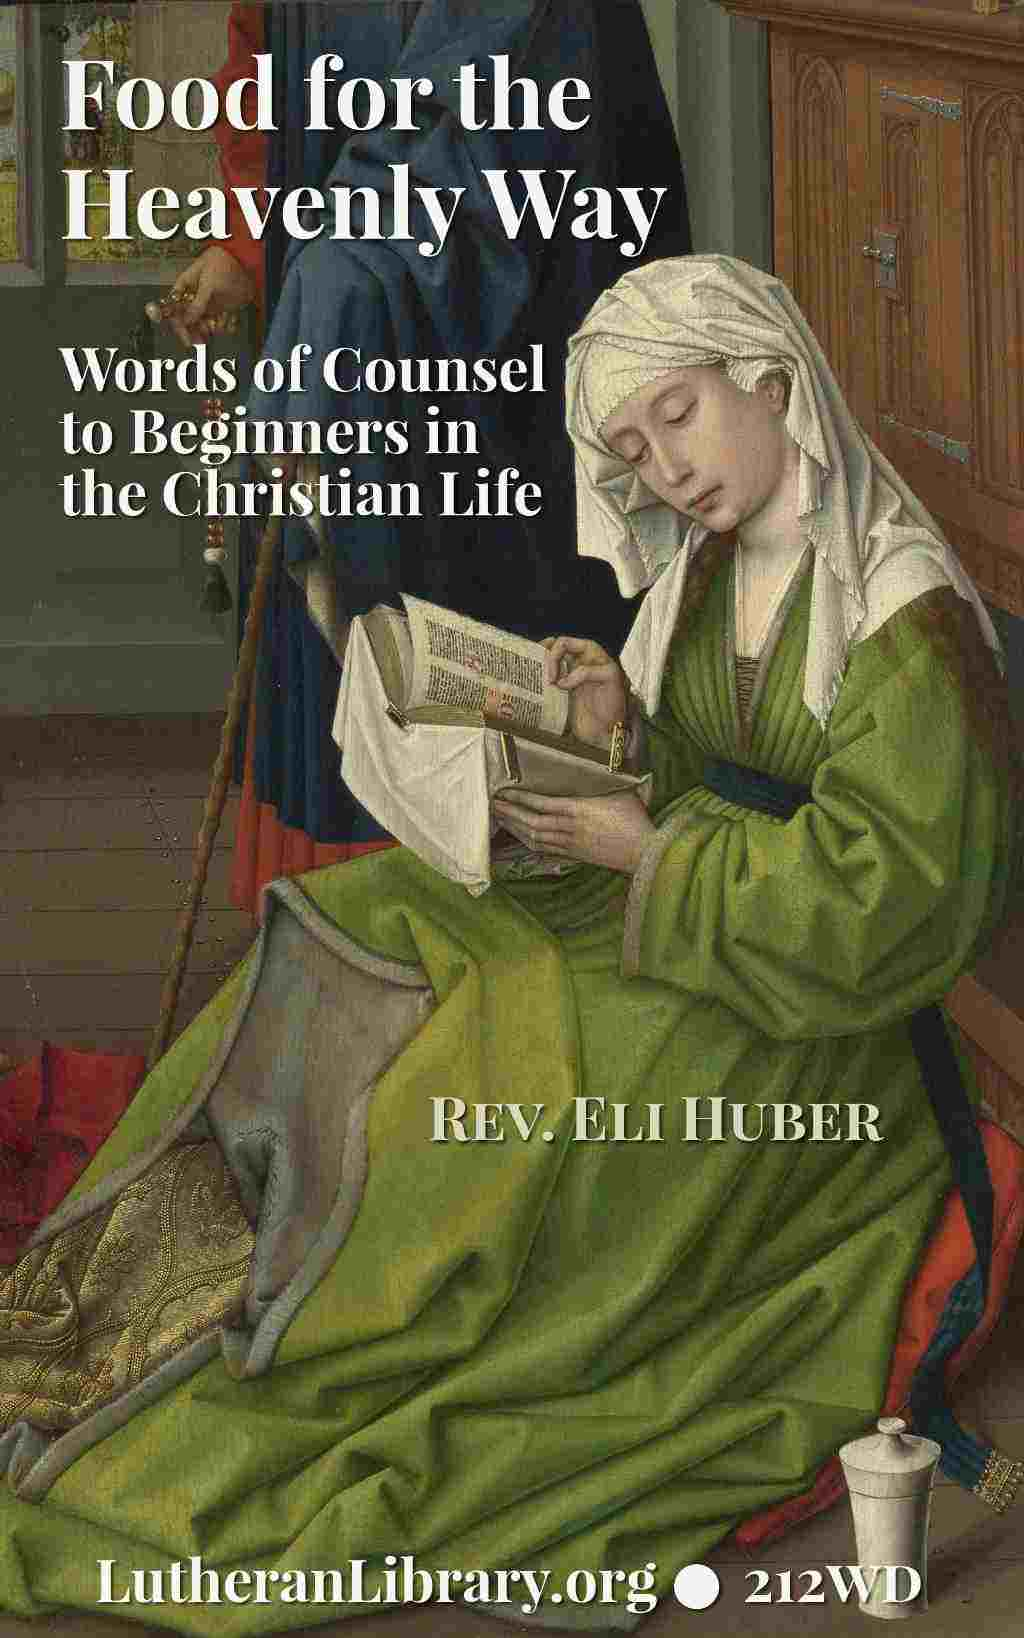 Food for the Heavenly Way: Words of Counsel to Beginners in the Christian Life by Eli Huber